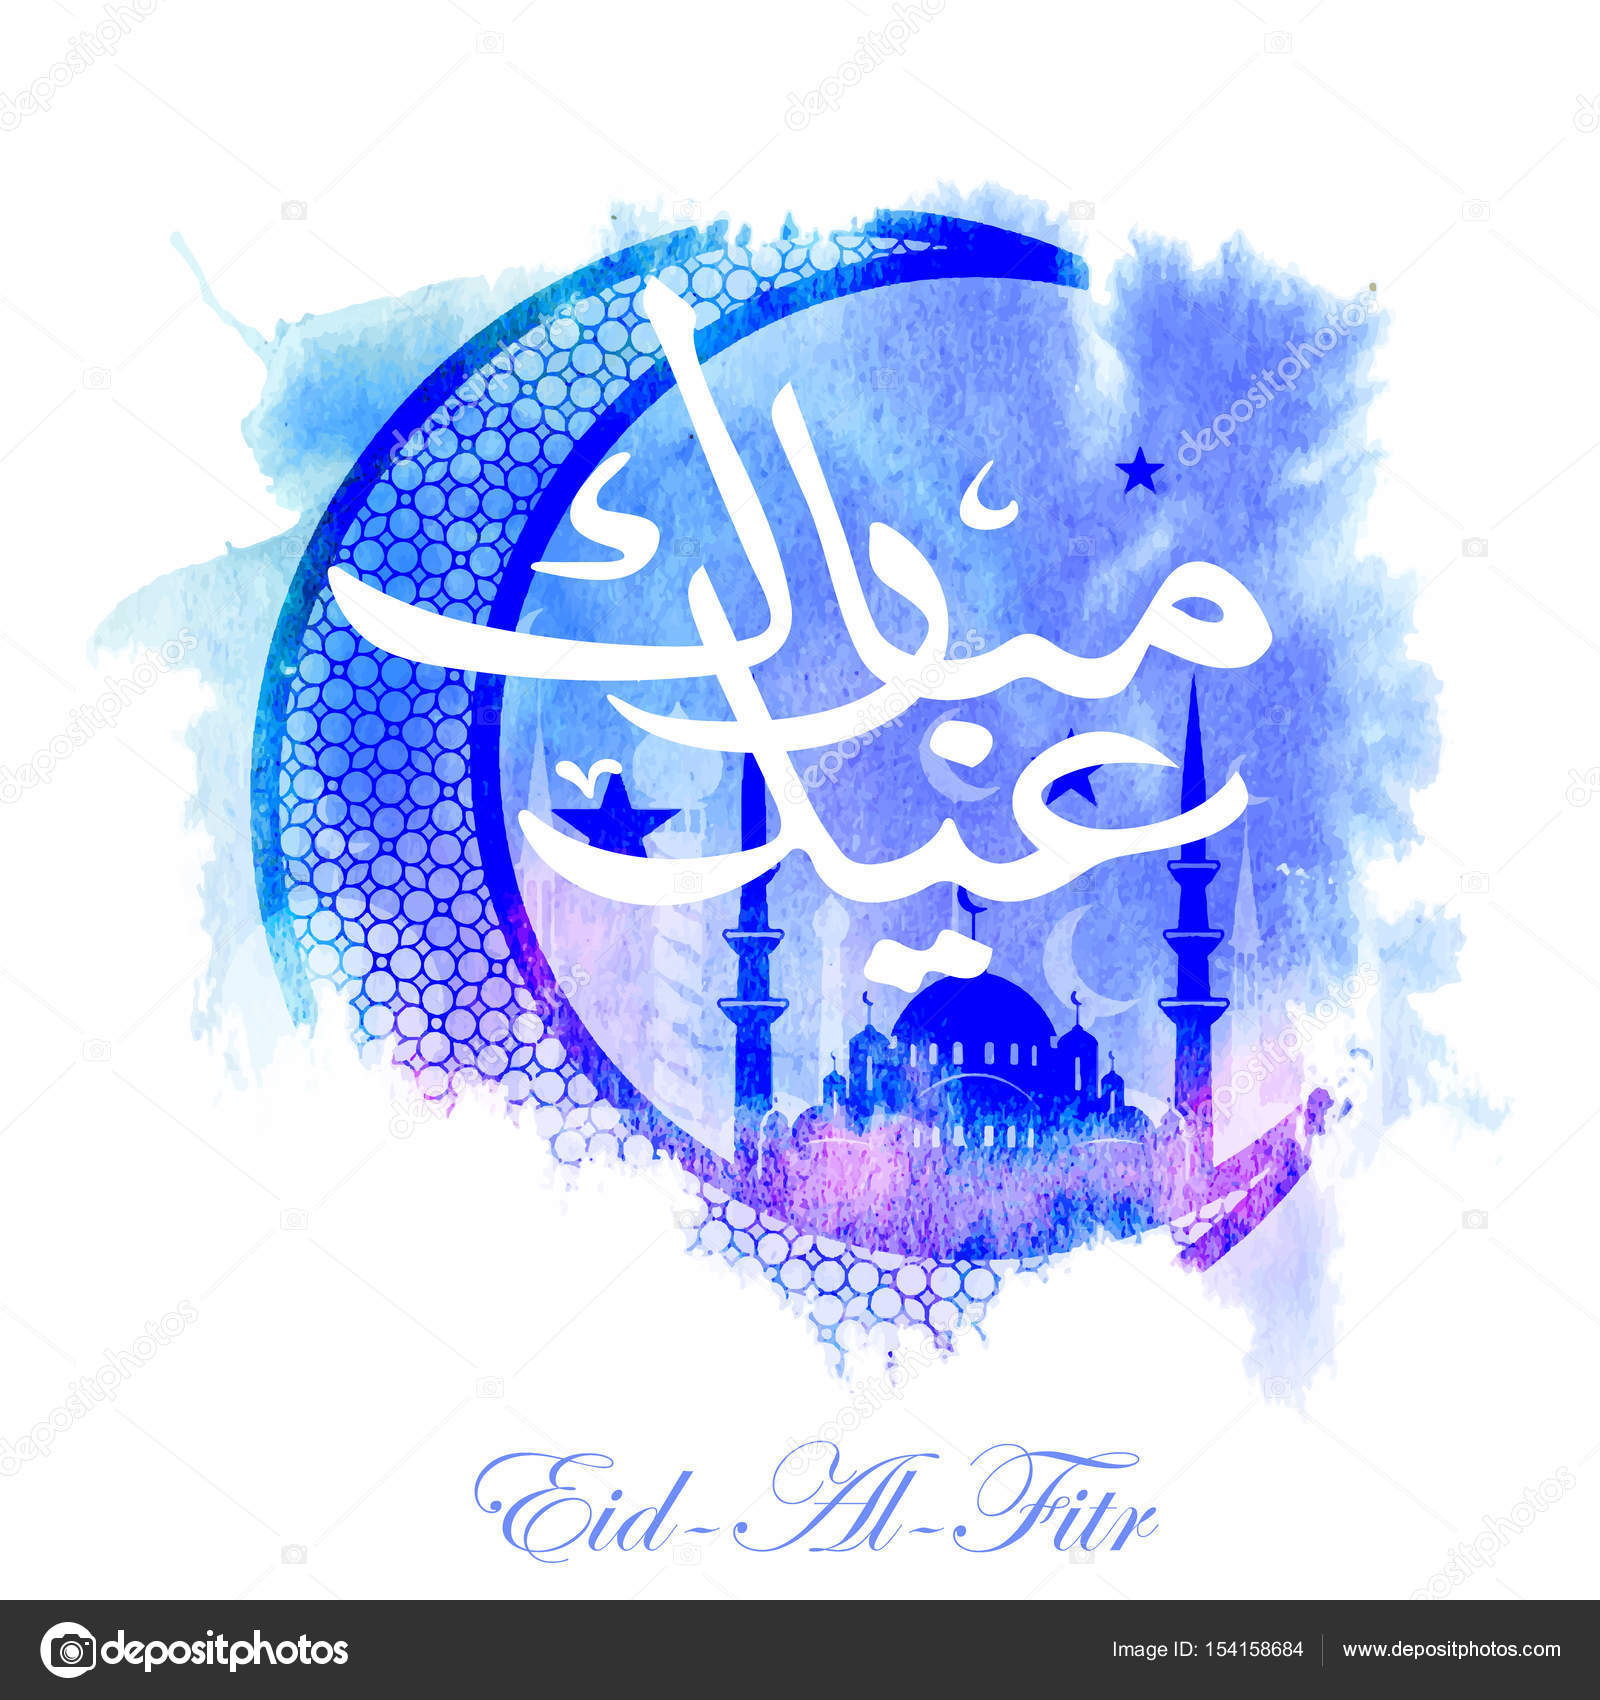 Eid al fitr greeting card stock photo vklim2011 154158684 calligraphy of arabic text eid al fitr feast of breaking the fast holiday greeting card in retro style text in arabic happy holiday kristyandbryce Images